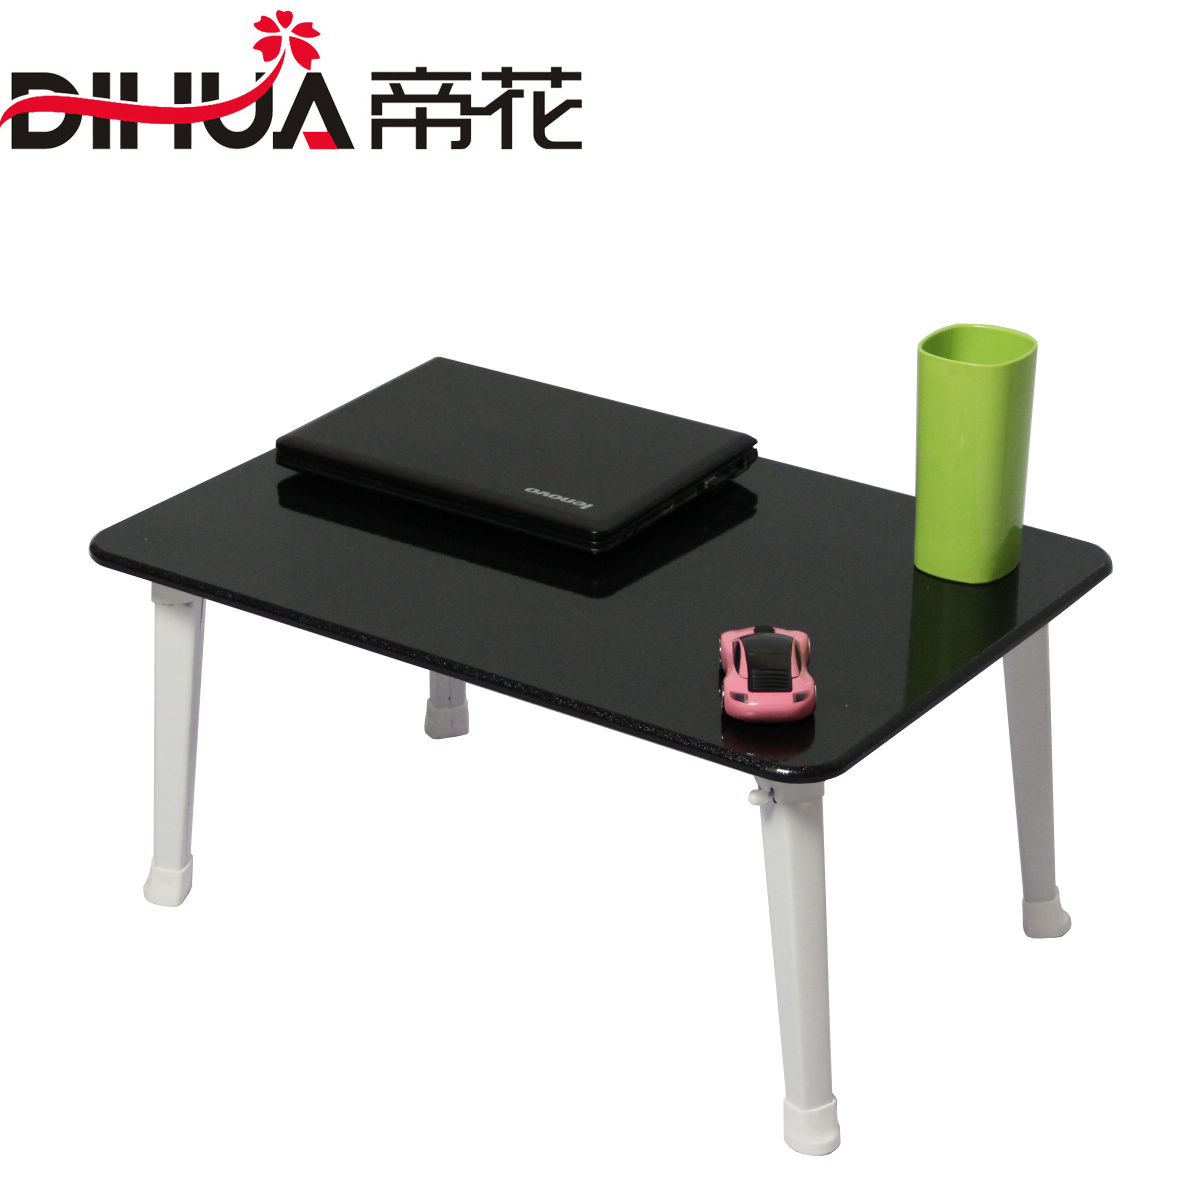 Spike activity desk bed laptop table folding versatile students tables